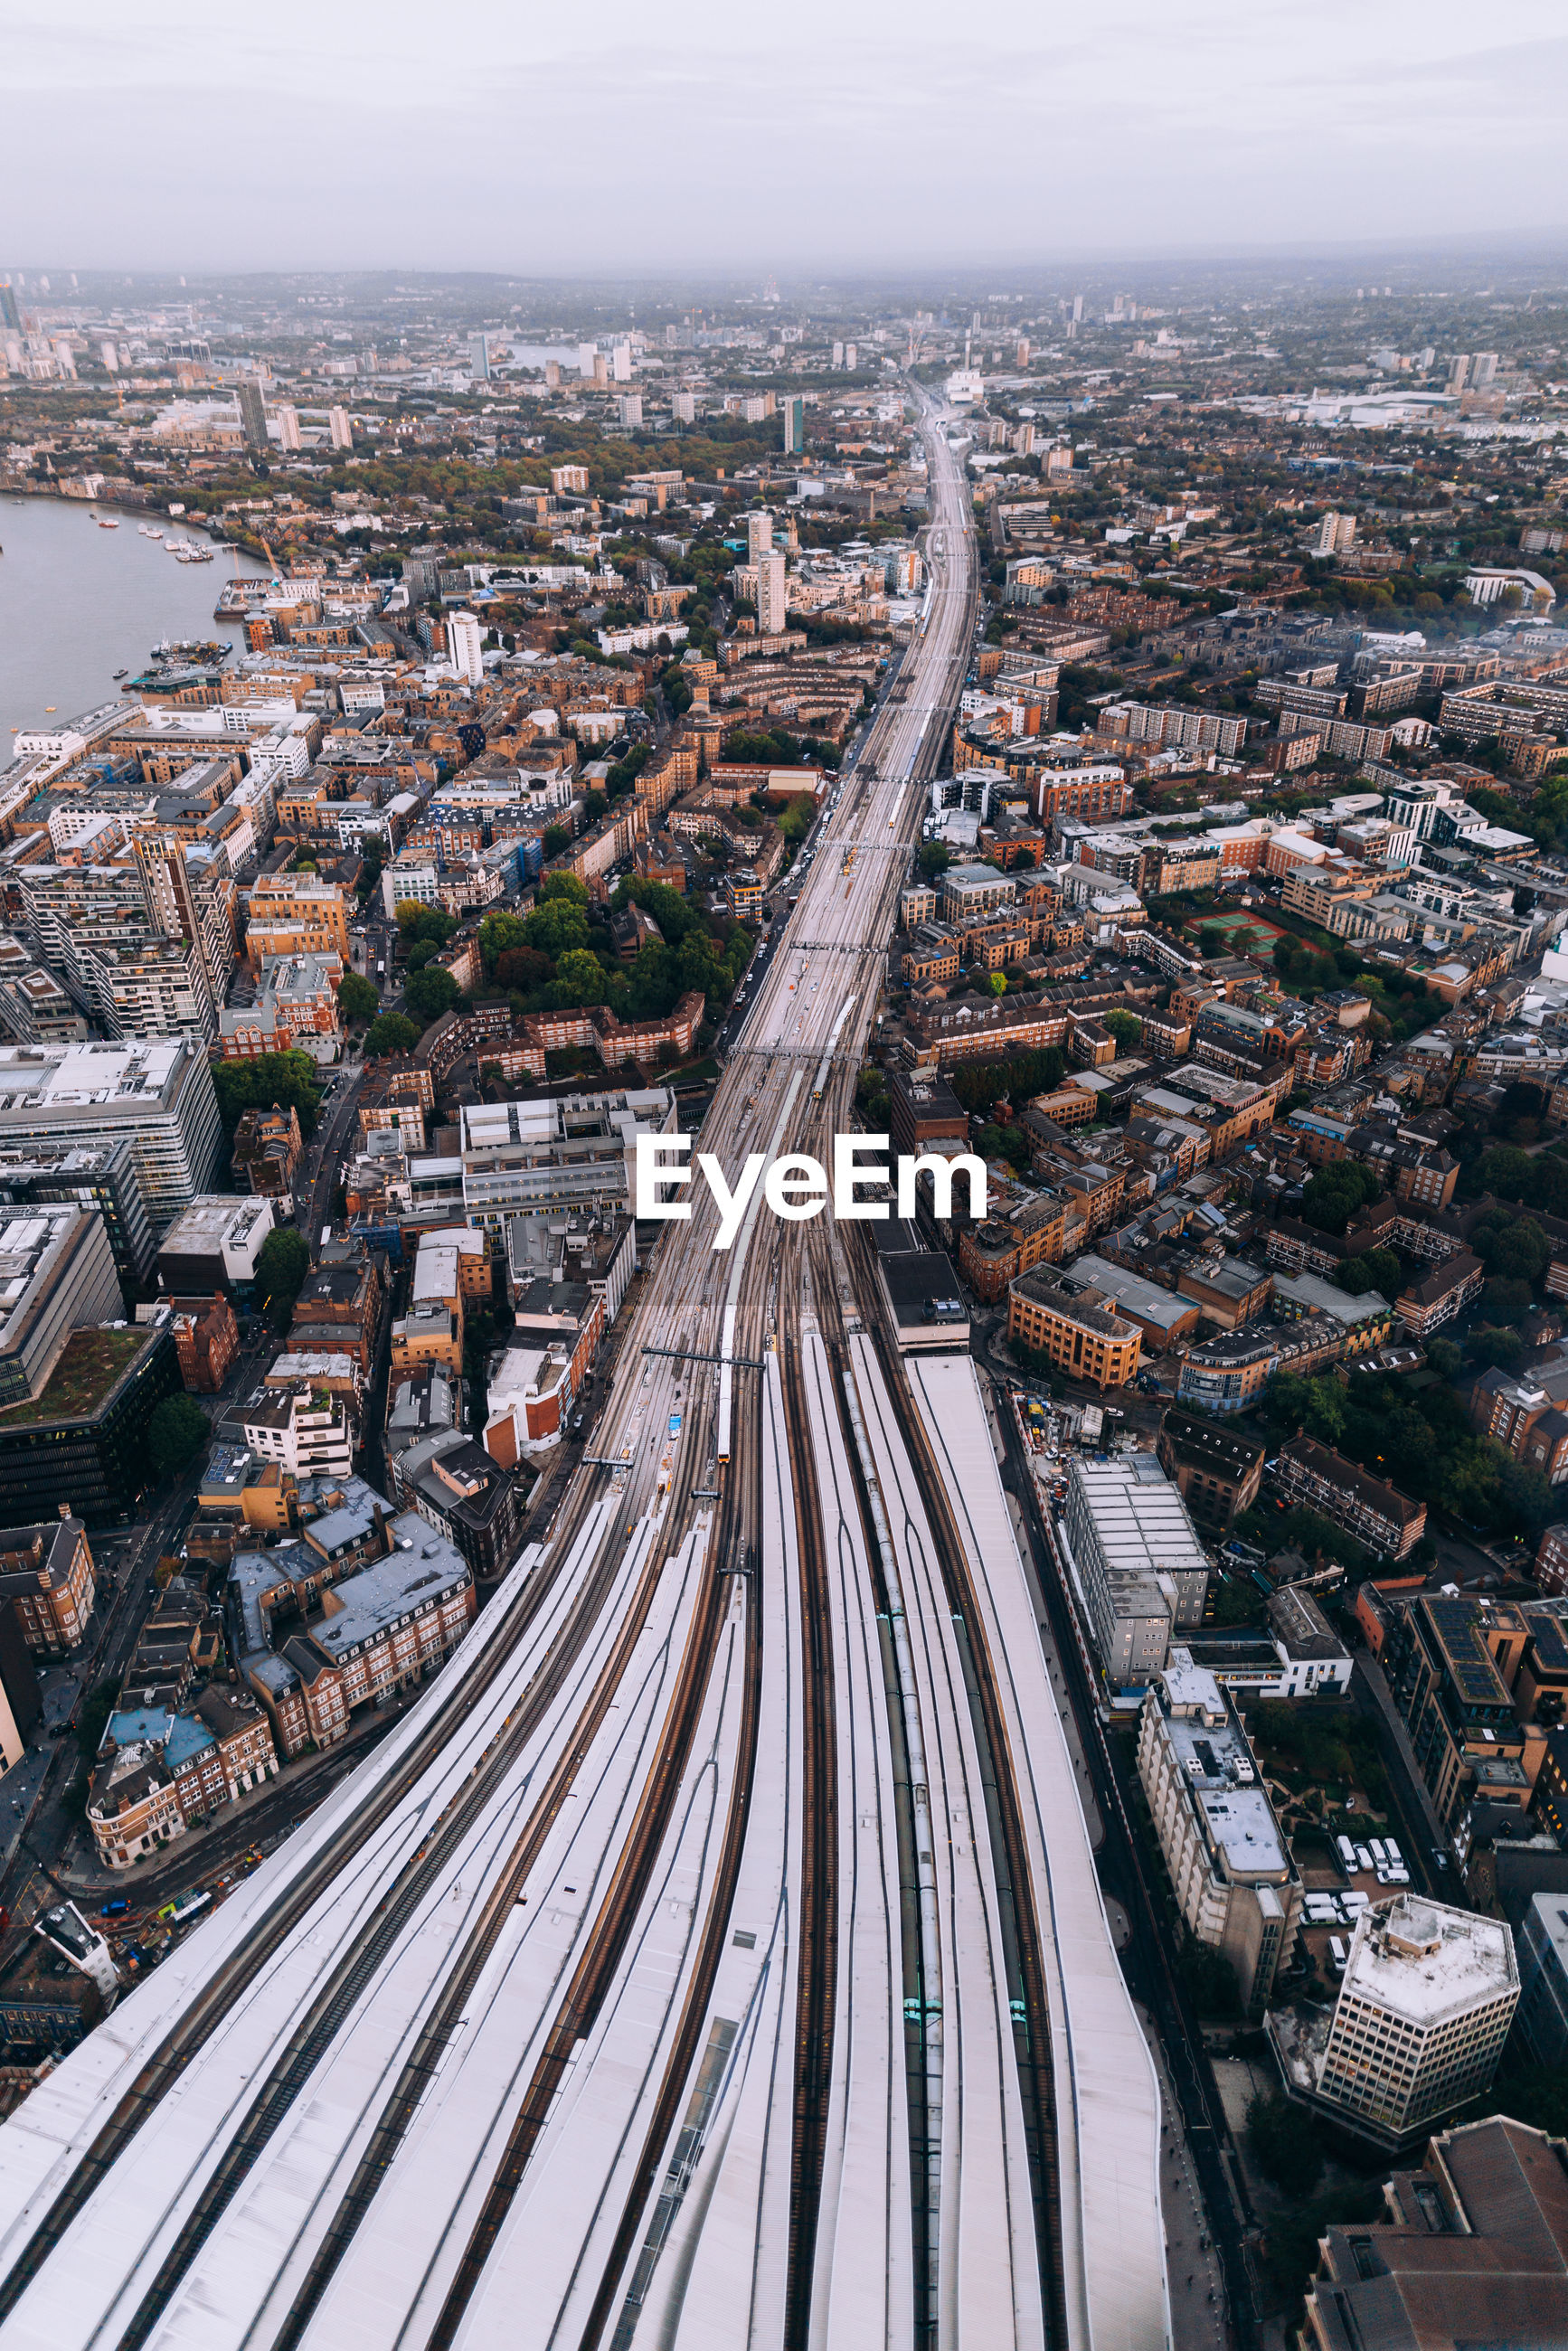 Aerial view of railroad tracks amidst buildings in city